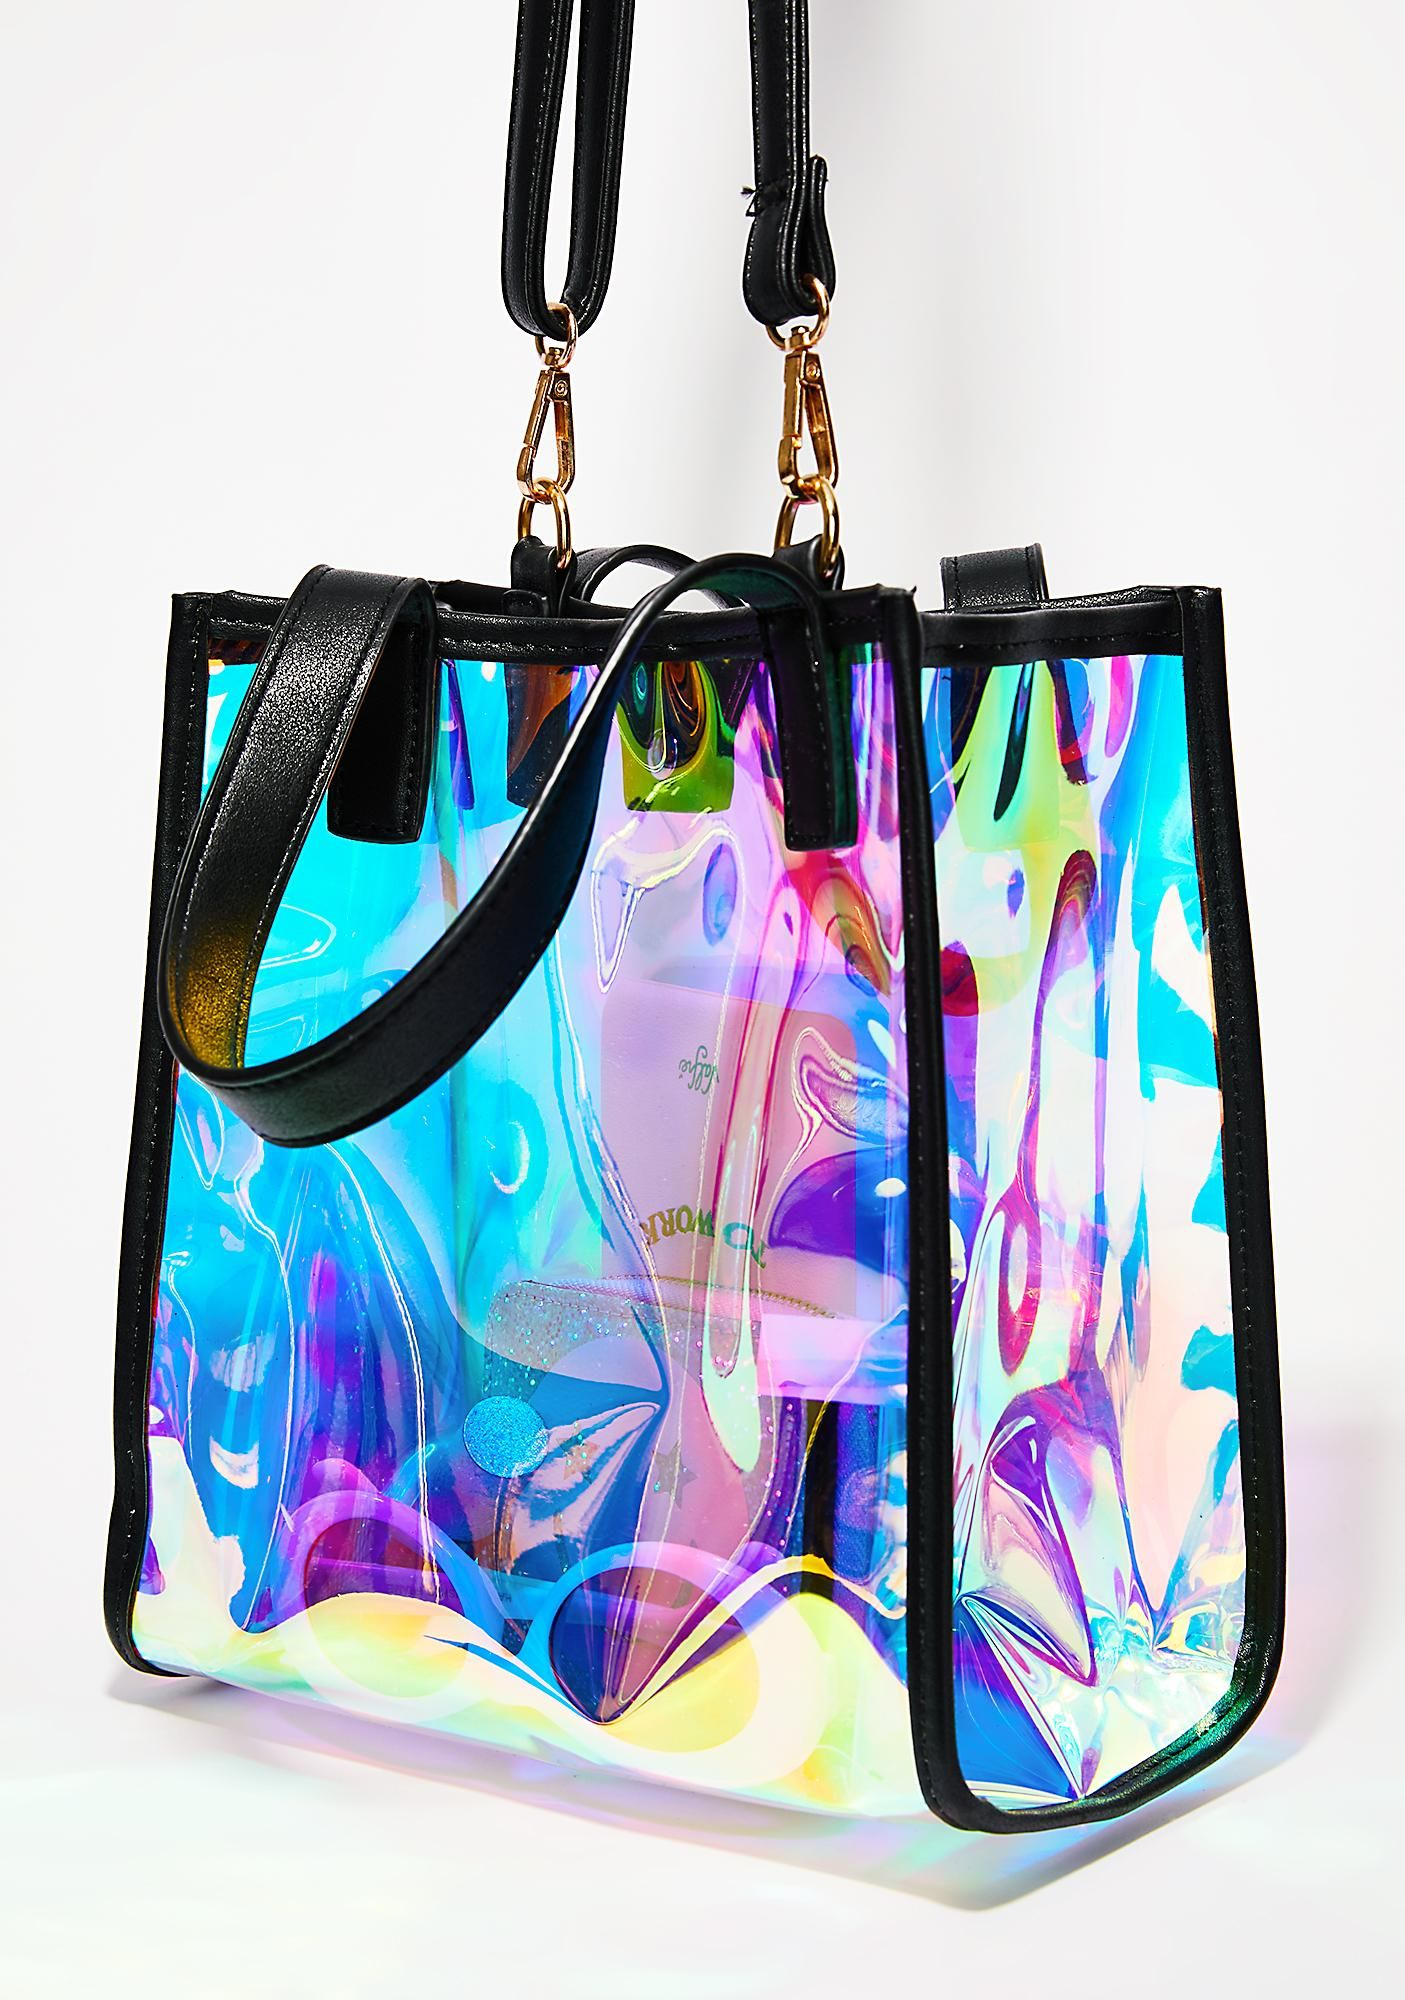 Moon Beamer Hologram Bag   Accessories   Bags, Handbags, Metallic ... 910c355f8f9